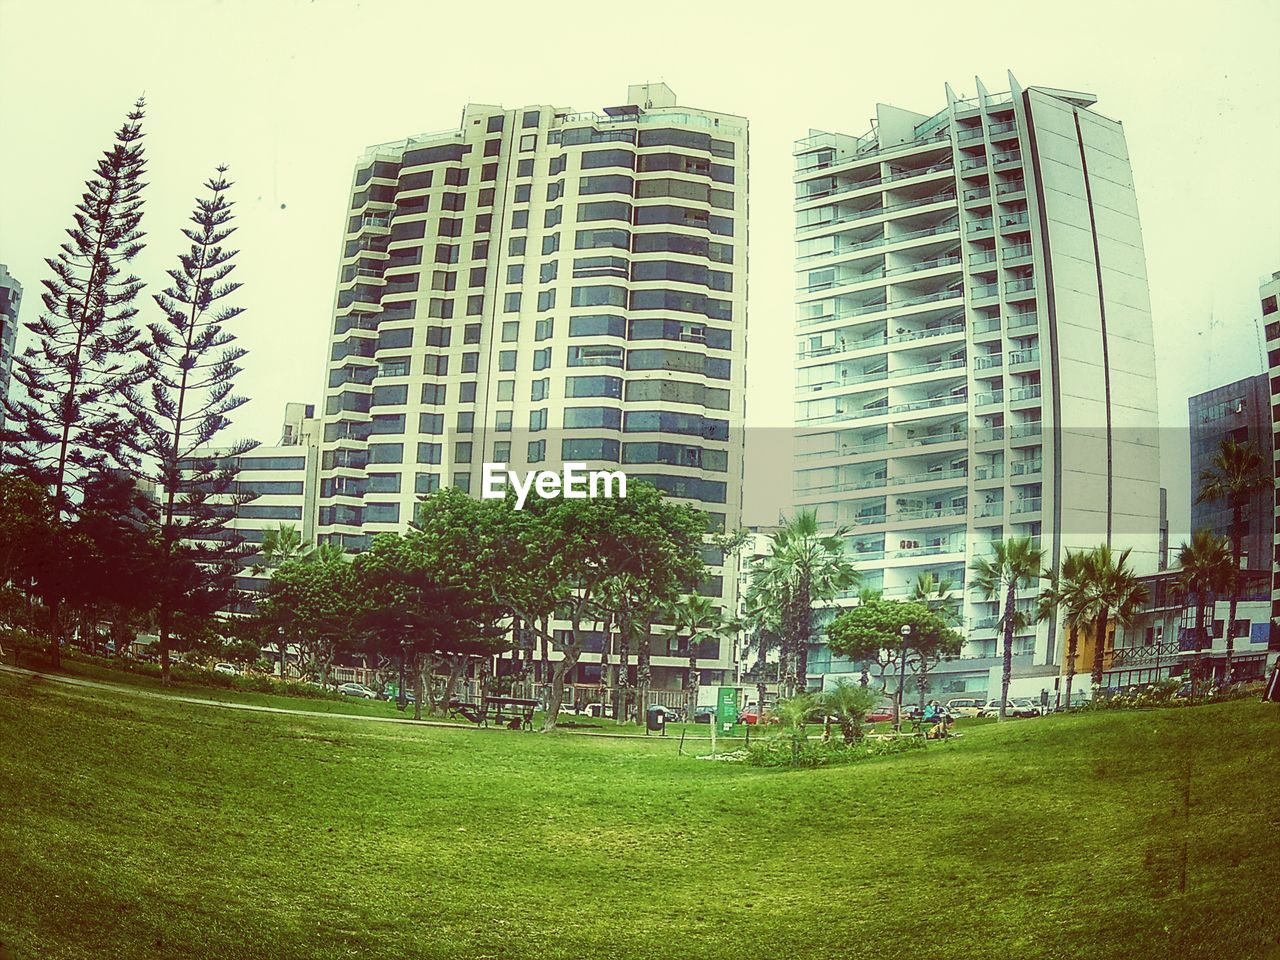 grass, tree, architecture, building exterior, growth, built structure, city, green color, modern, outdoors, skyscraper, no people, day, sky, nature, apartment